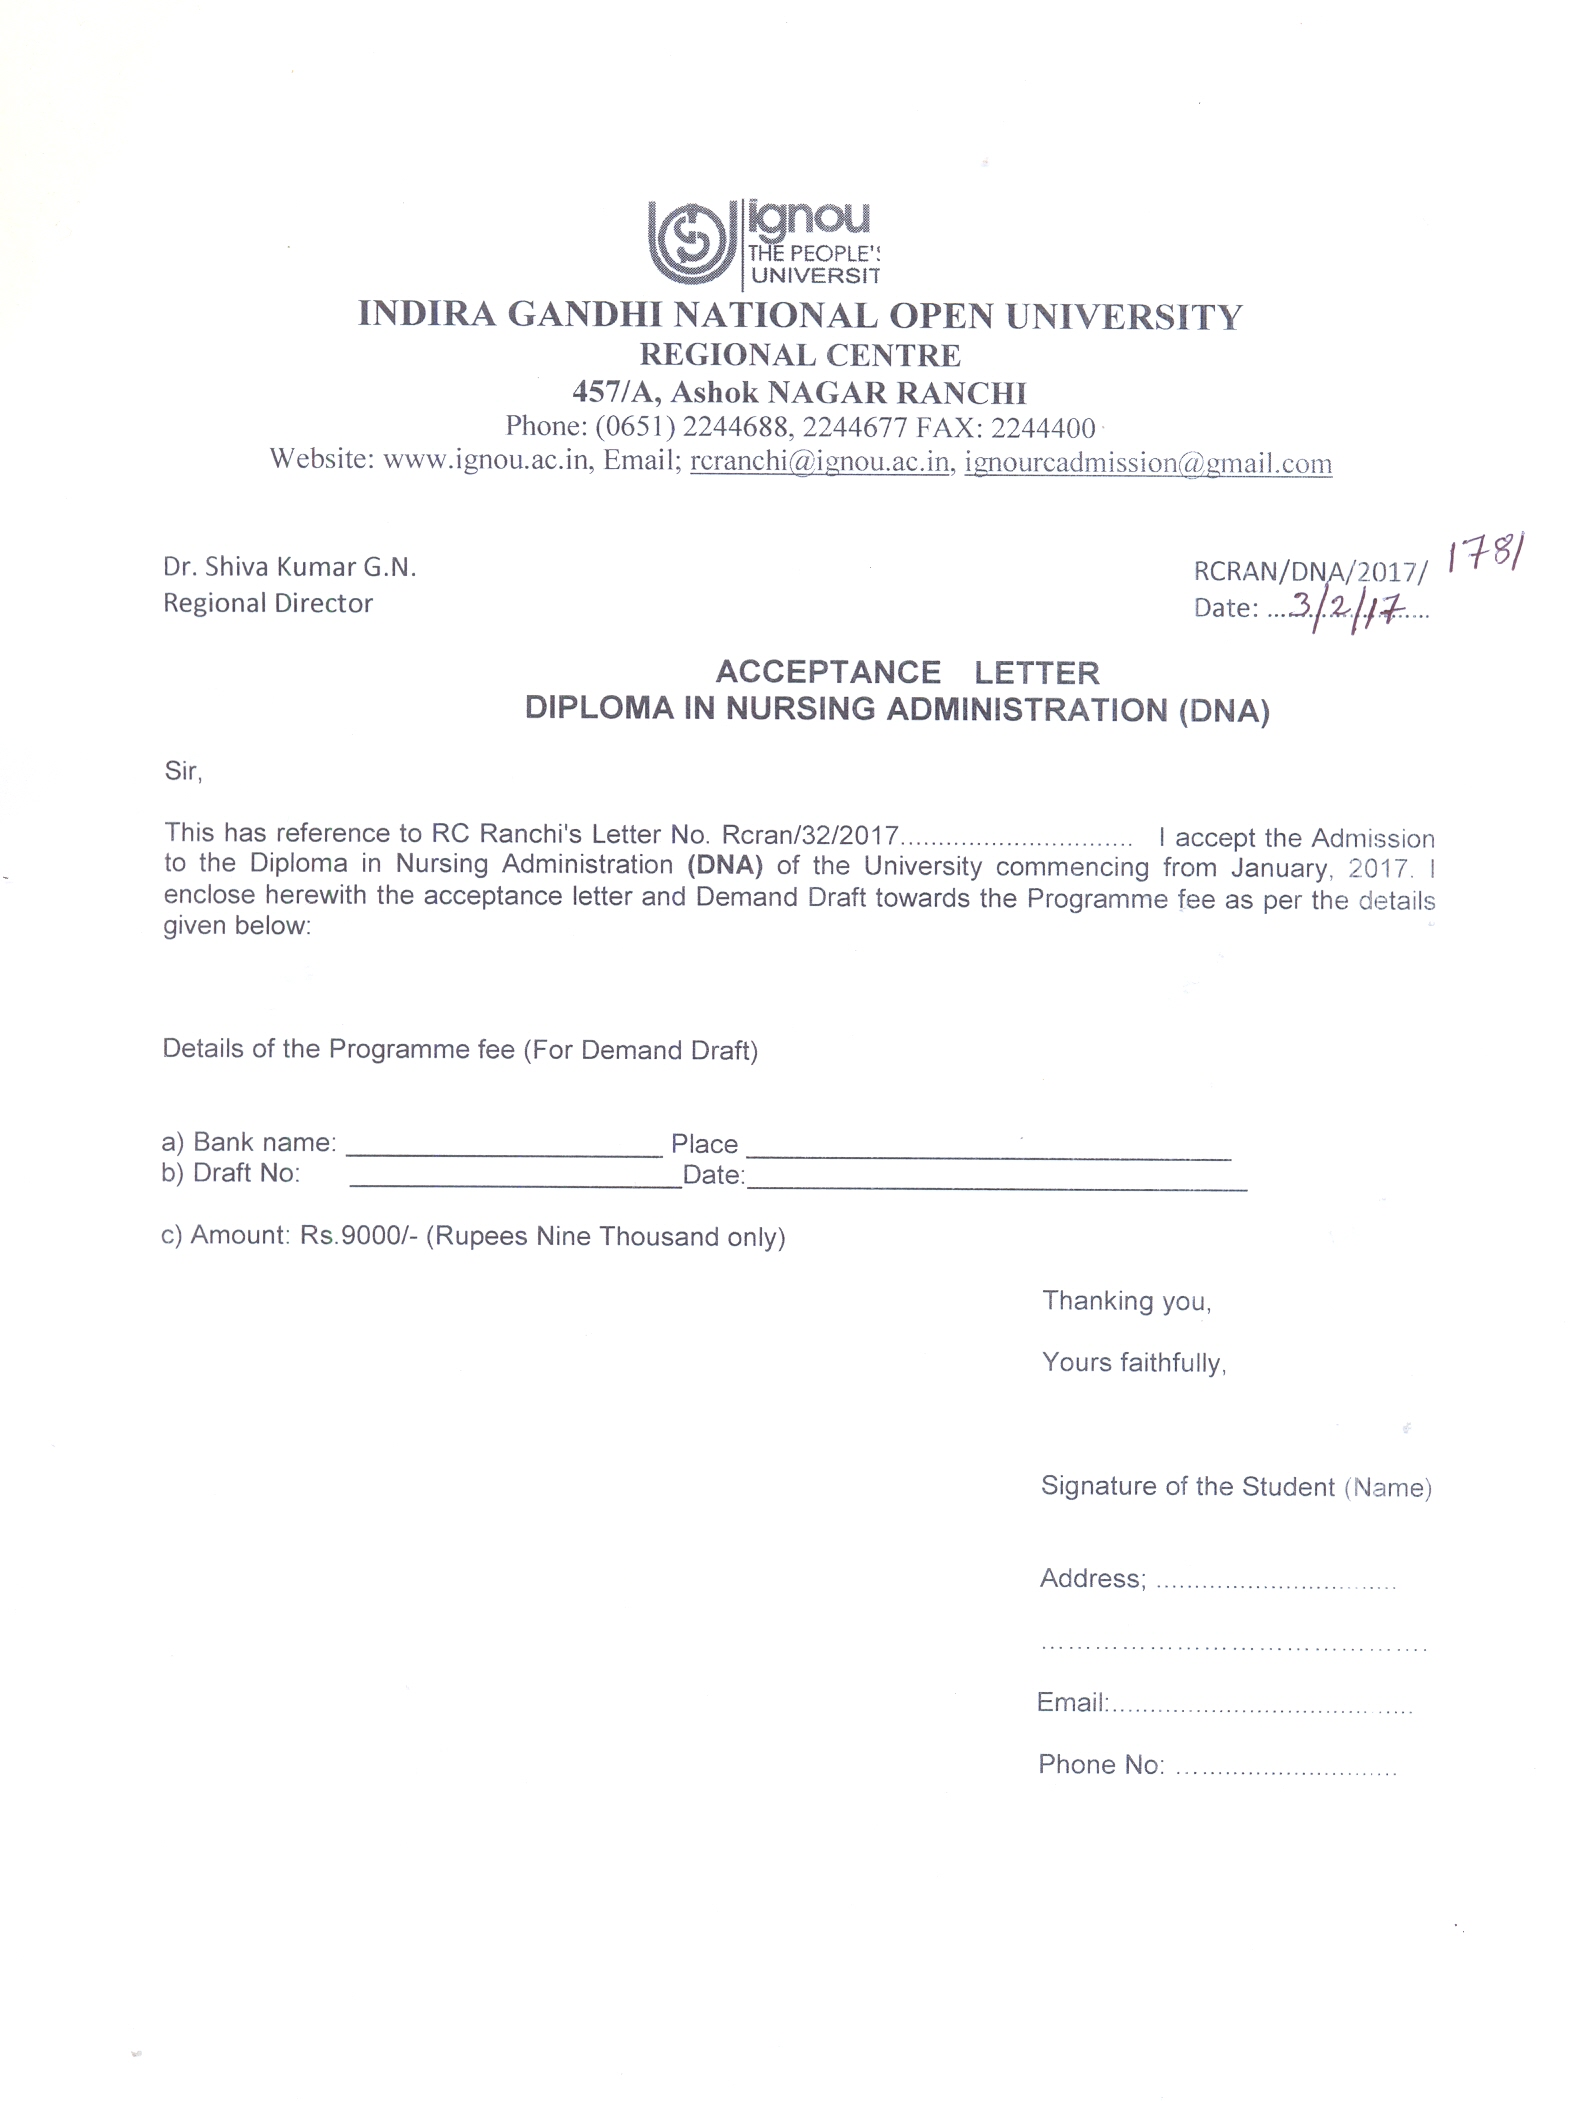 ignou rc ranchi announcements latest offer letter acceptance offer letter · acceptance letter